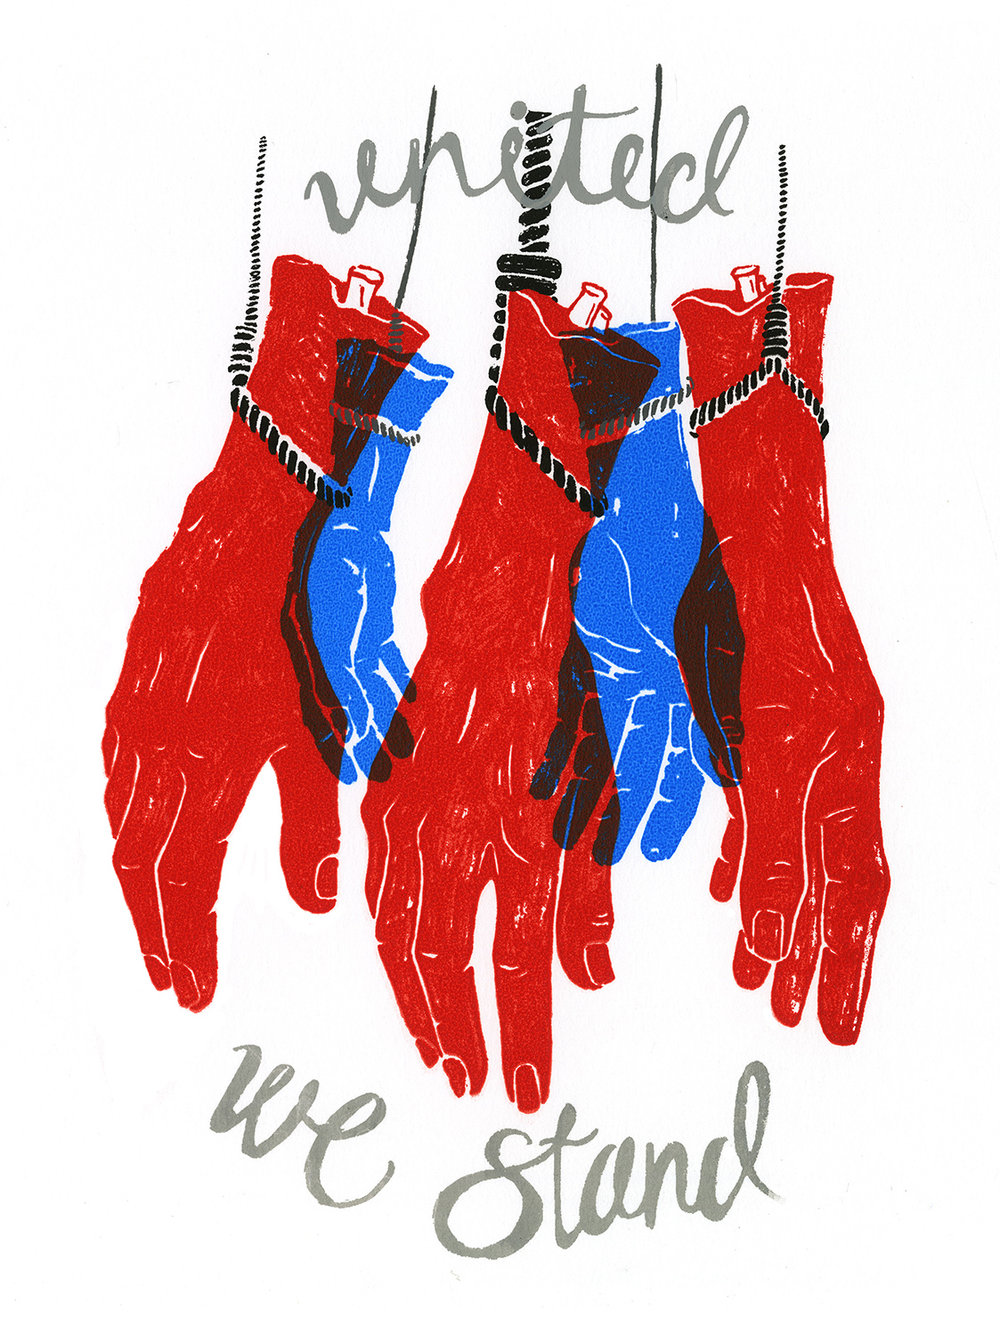 United We Stand (Original Screen Print)